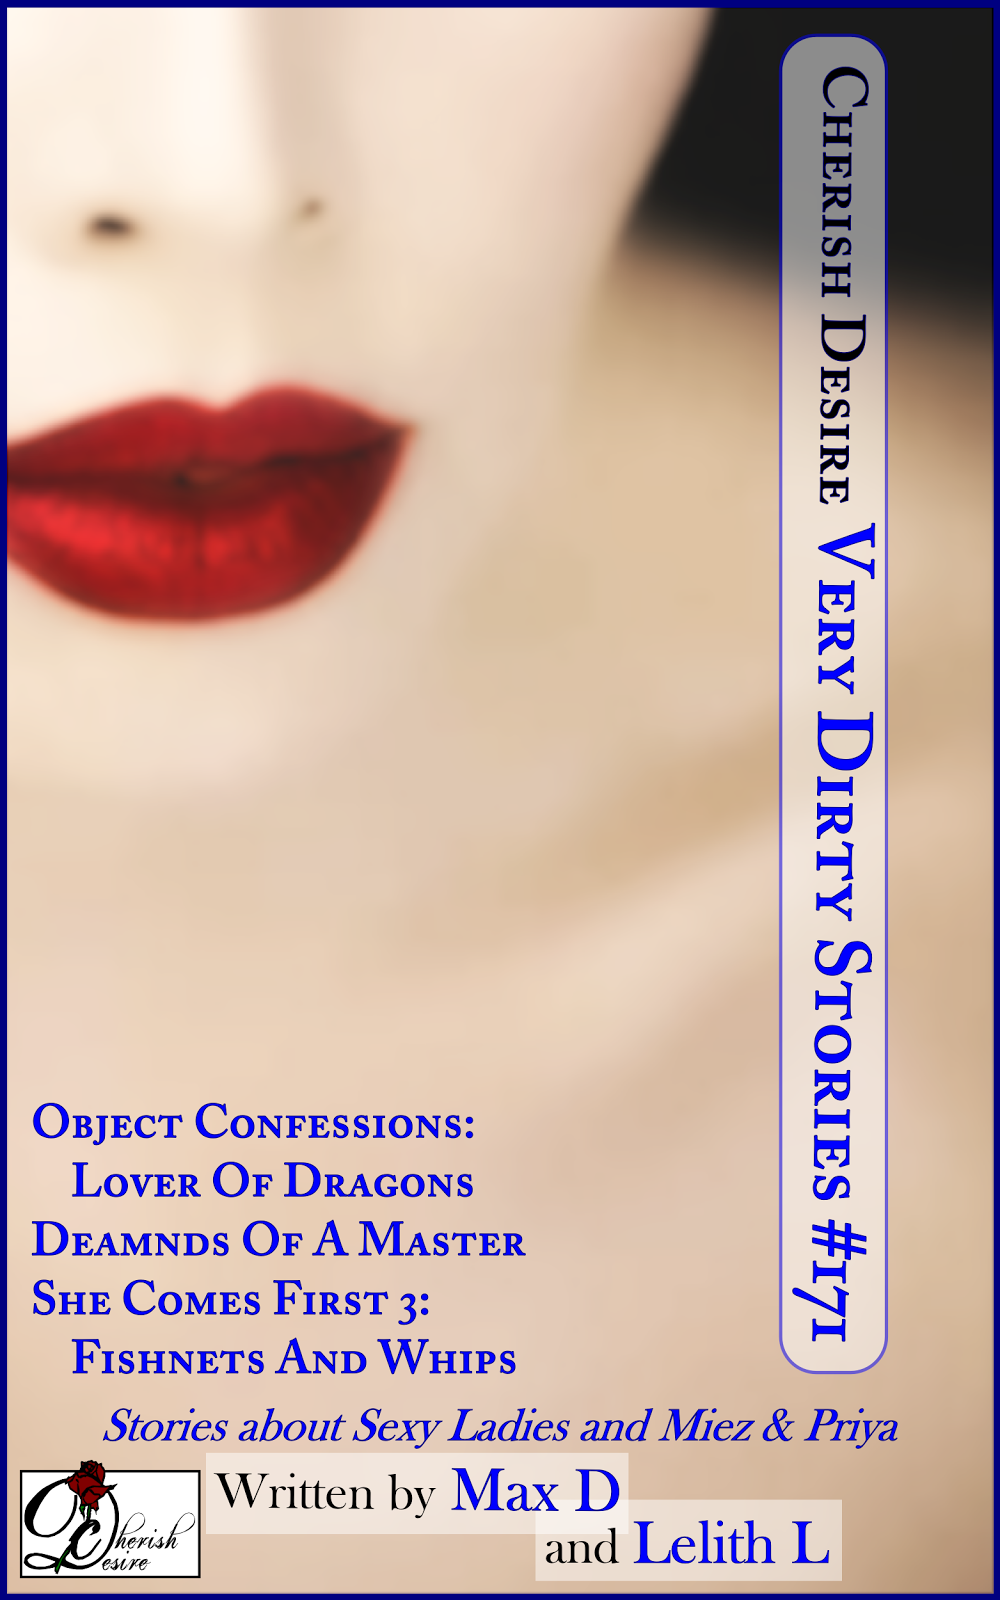 Cherish Desire: Very Dirty Stories #171, Max D, Lelith L, erotica